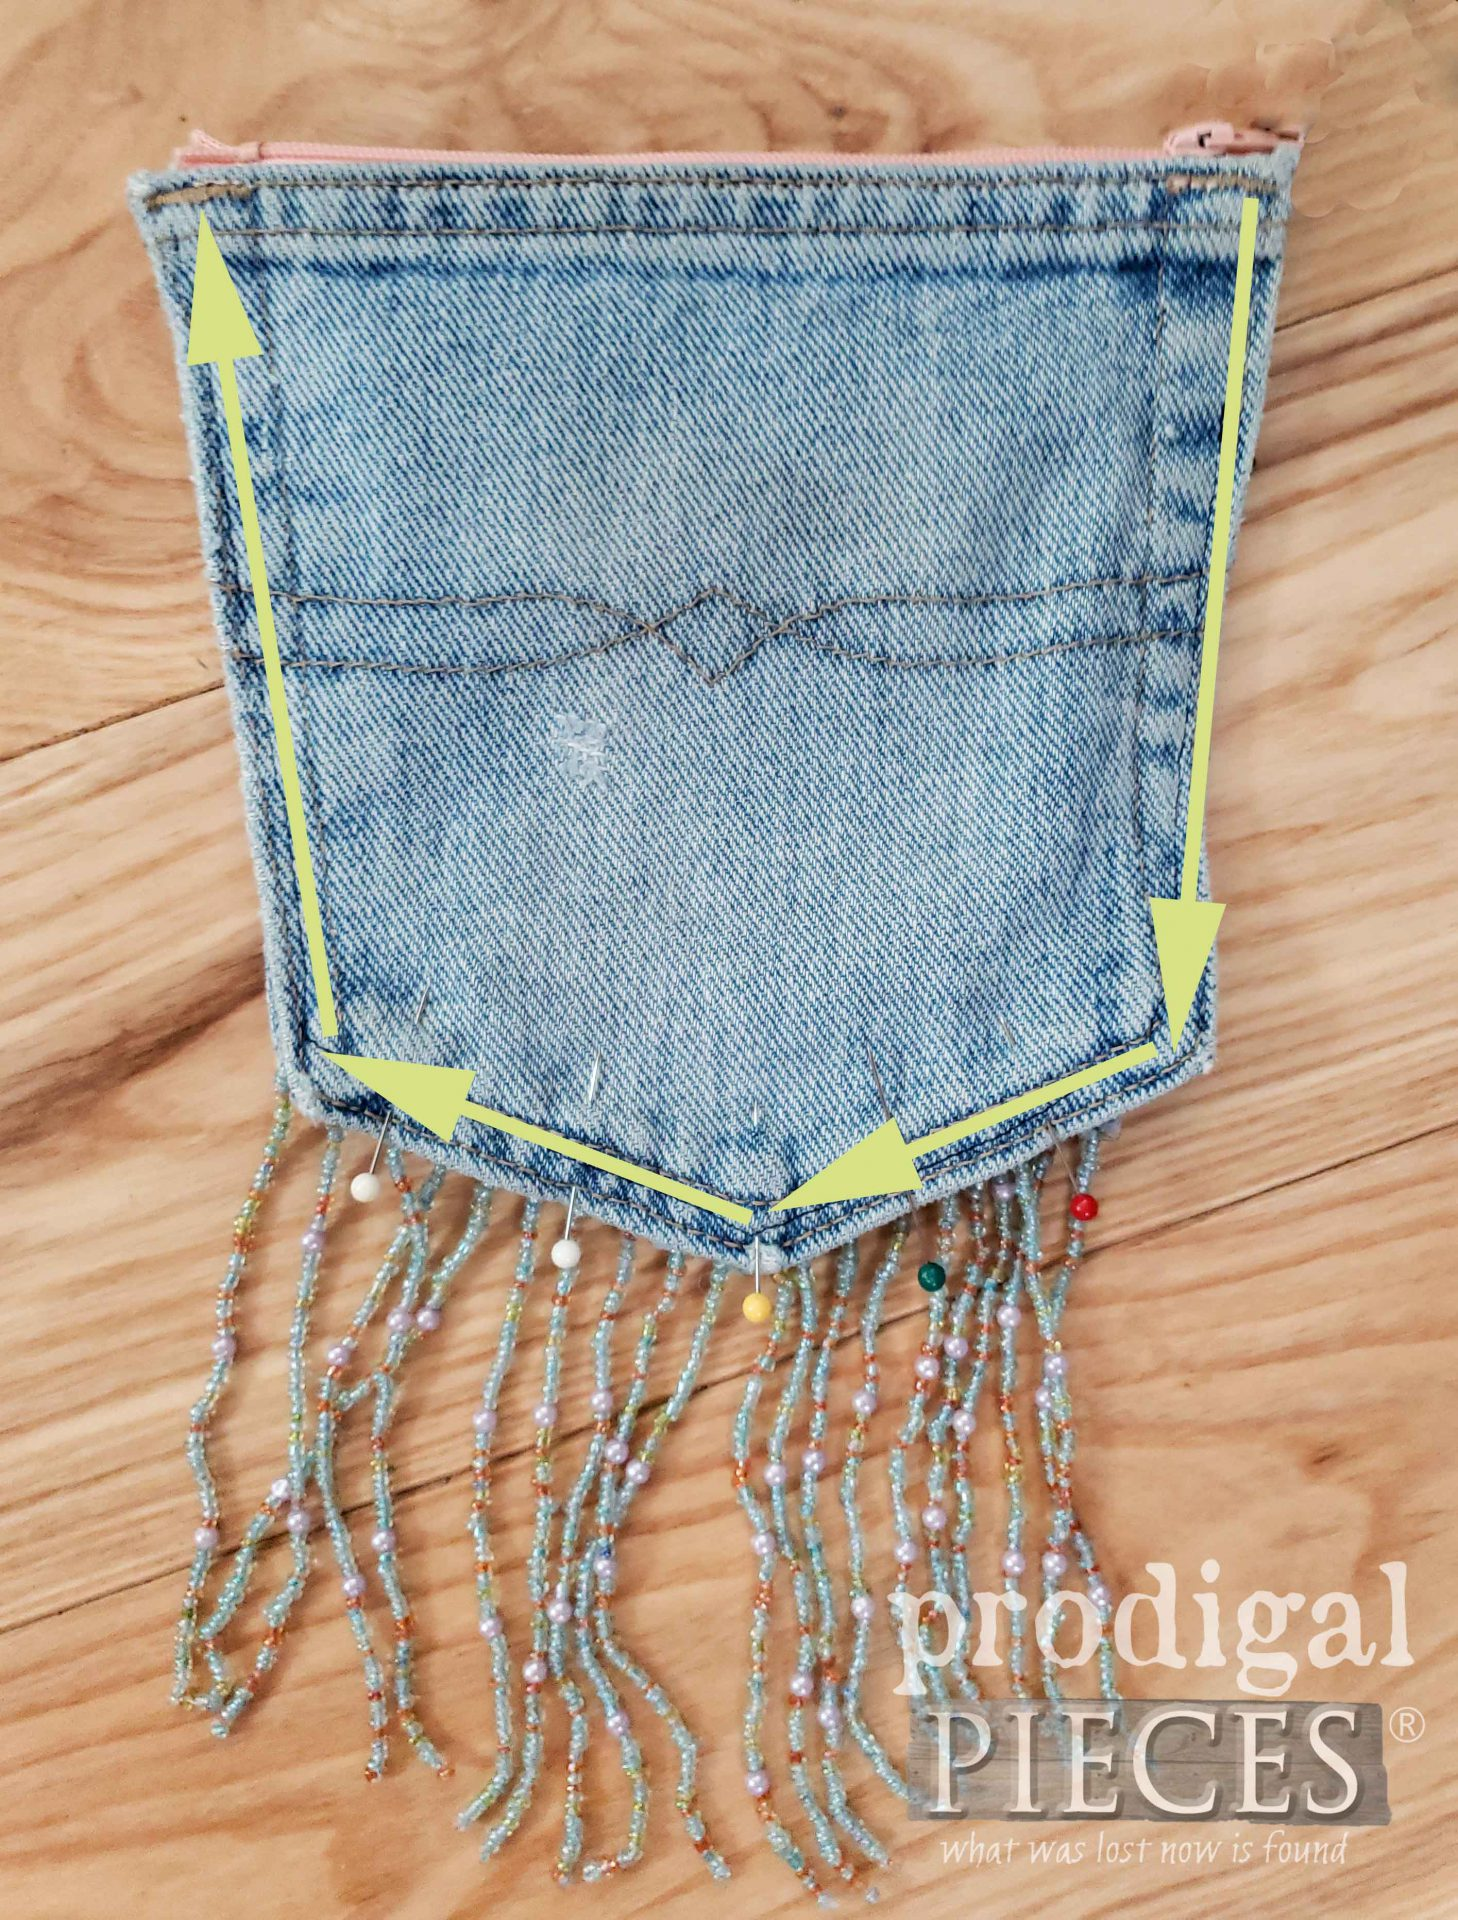 Denim Pocket Purse Stitch Layout | Prodigal Pieces | prodigalpieces.com